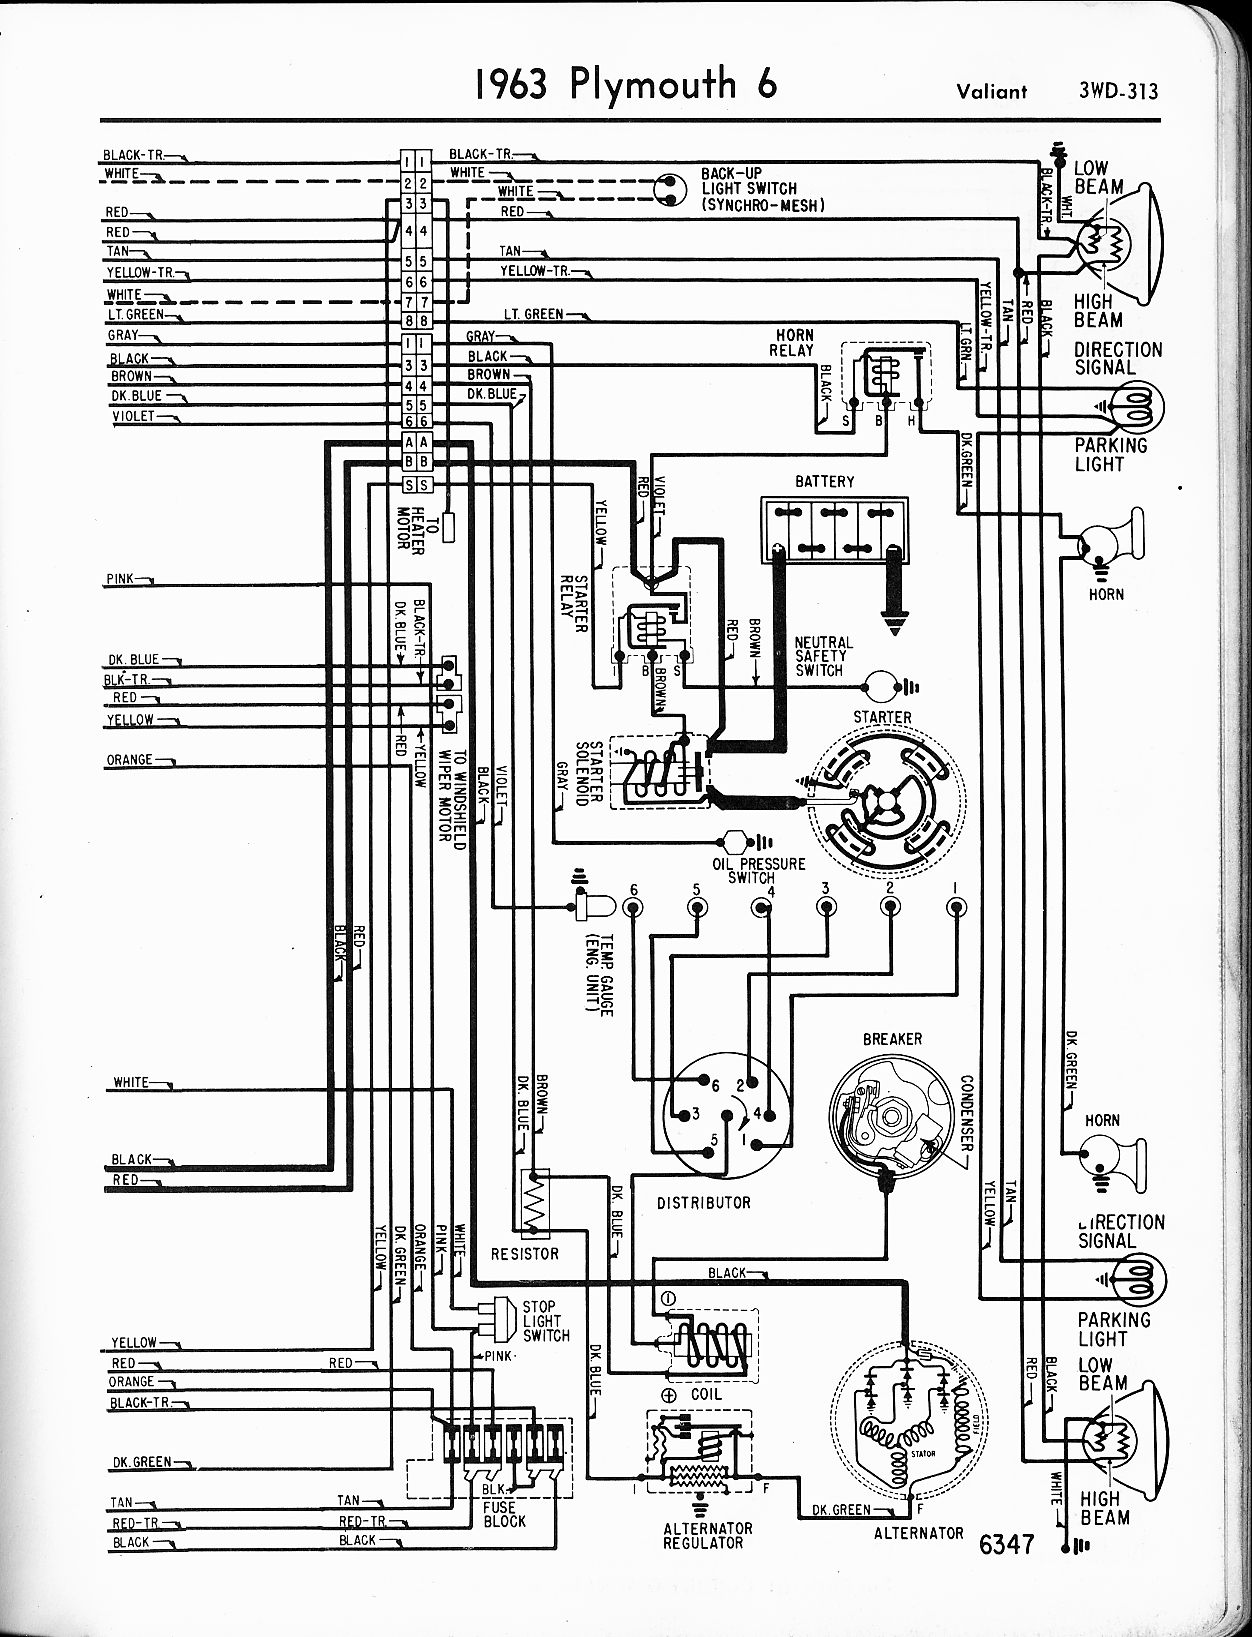 1954 Plymouth Belvedere Wiring Diagram 38 Images Laptop Battery Circuit 1956 1965 The Old Car Manual Project